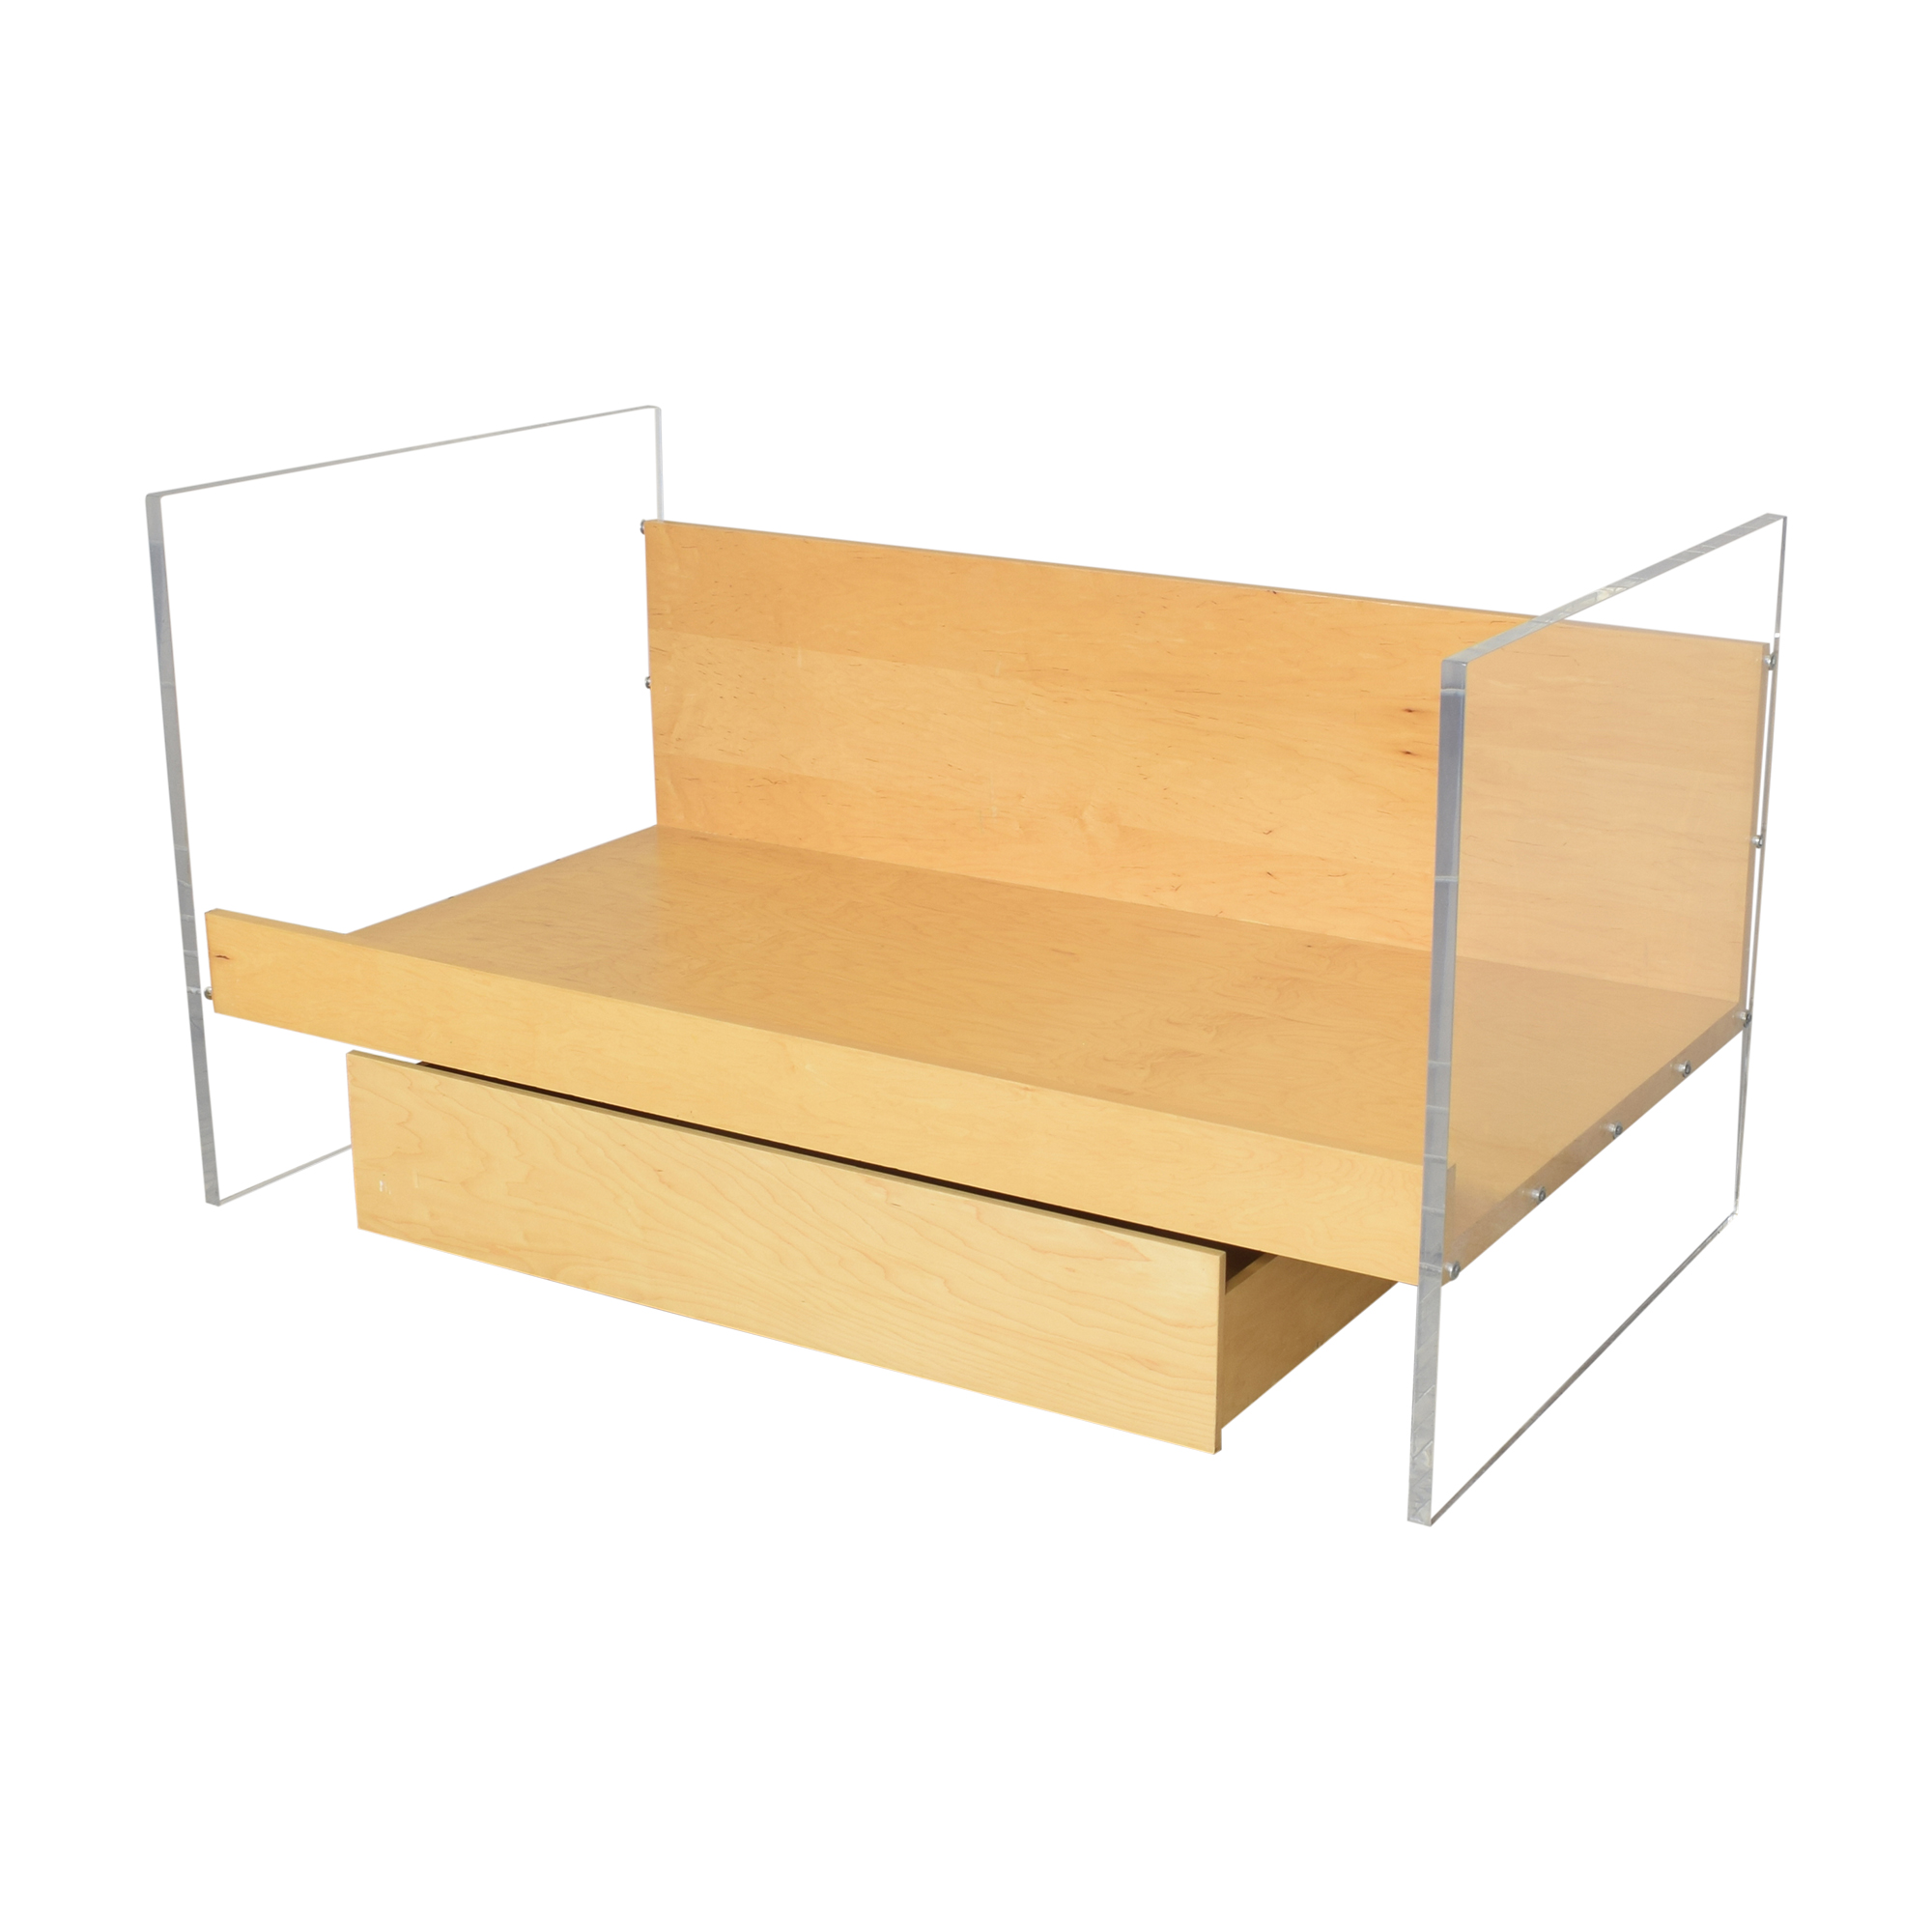 Custom Twin Storage Bed dimensions